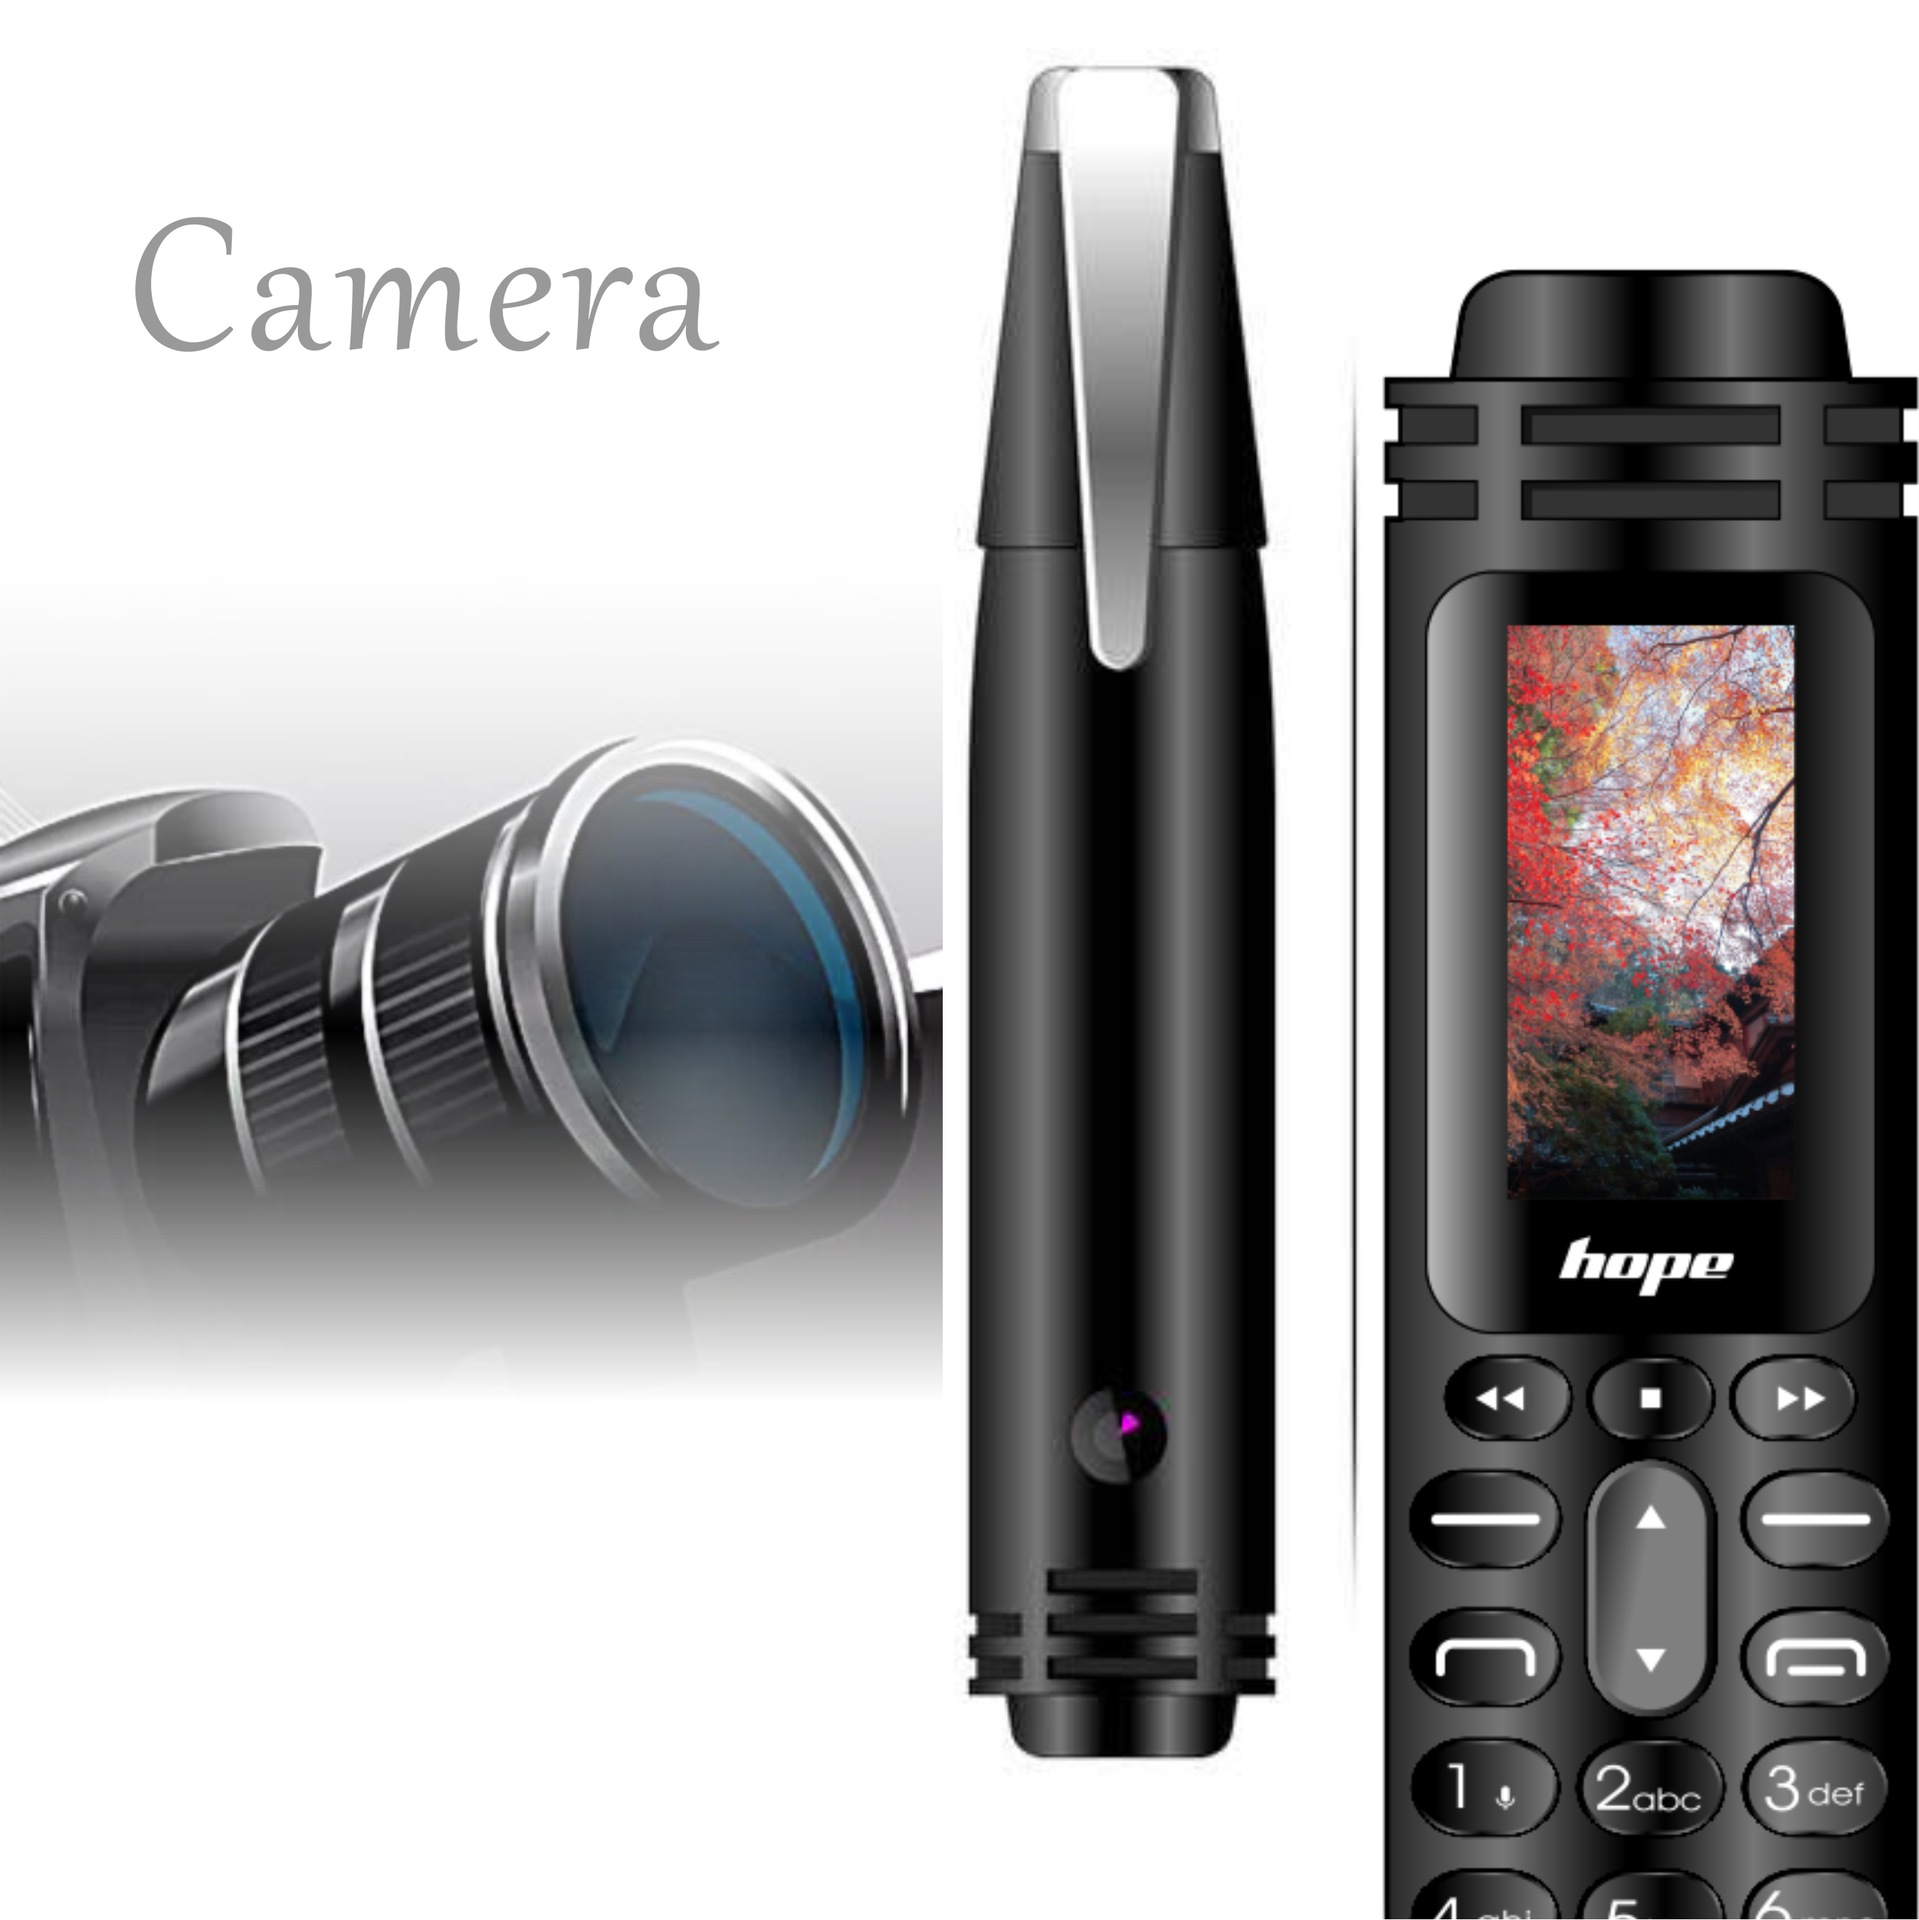 CHAOAI AK007 Mini Pen Mobile Phone Dual Sims Dual Standby GSM Bluetooth 2G Unlocked Small Cellphone Camera Flashlight Recording